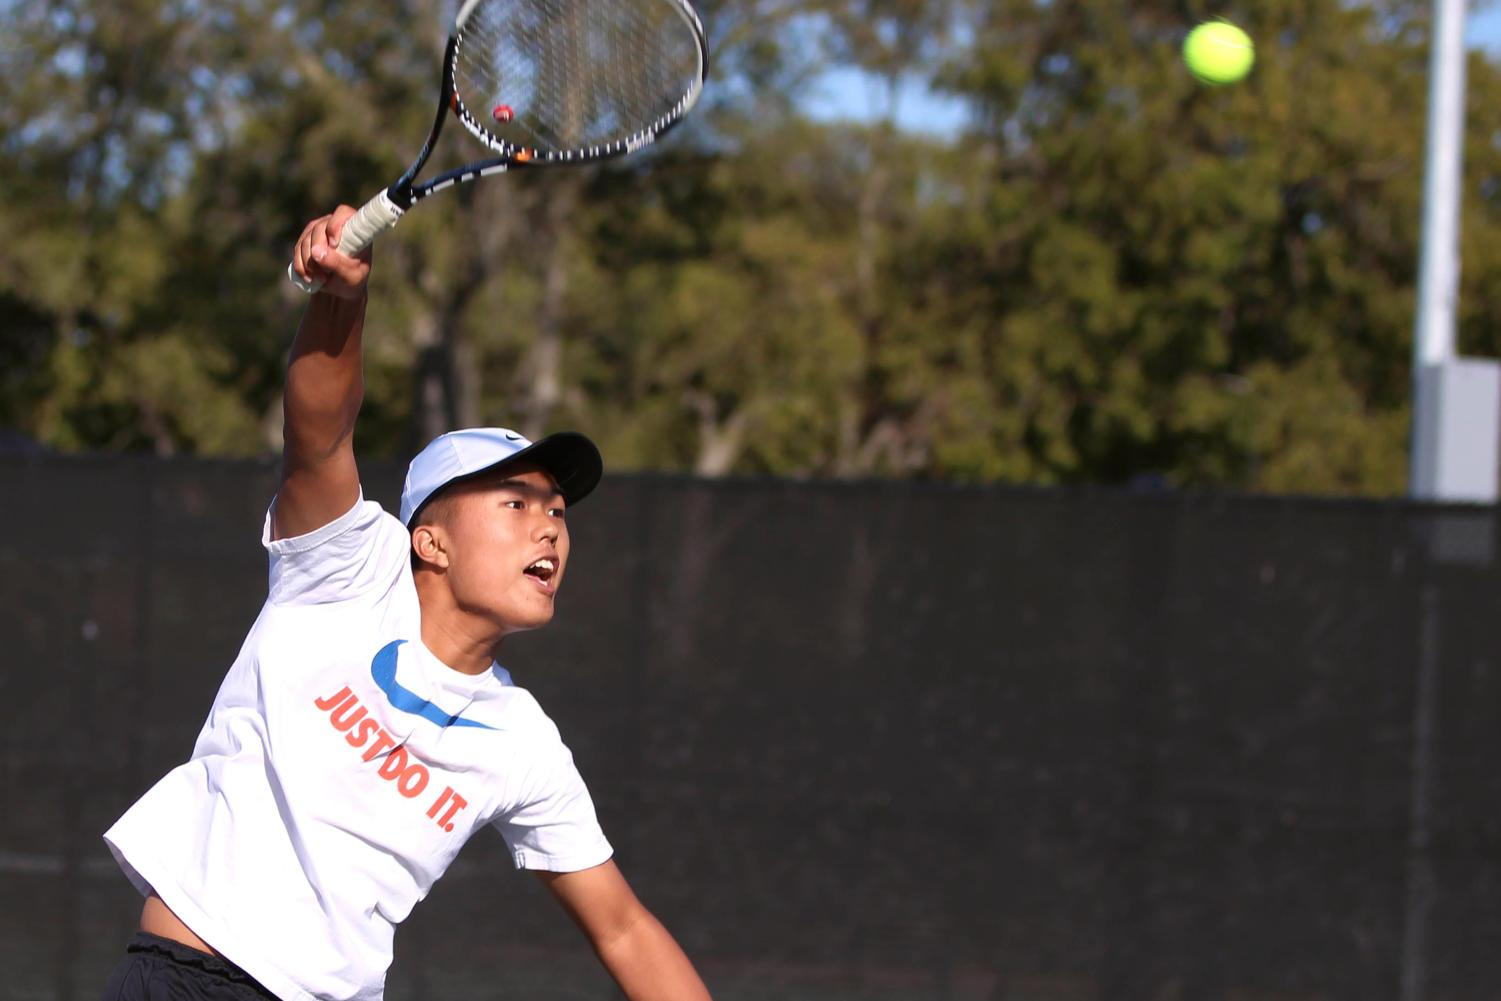 Senior Chris Sun serves the ball during practice.